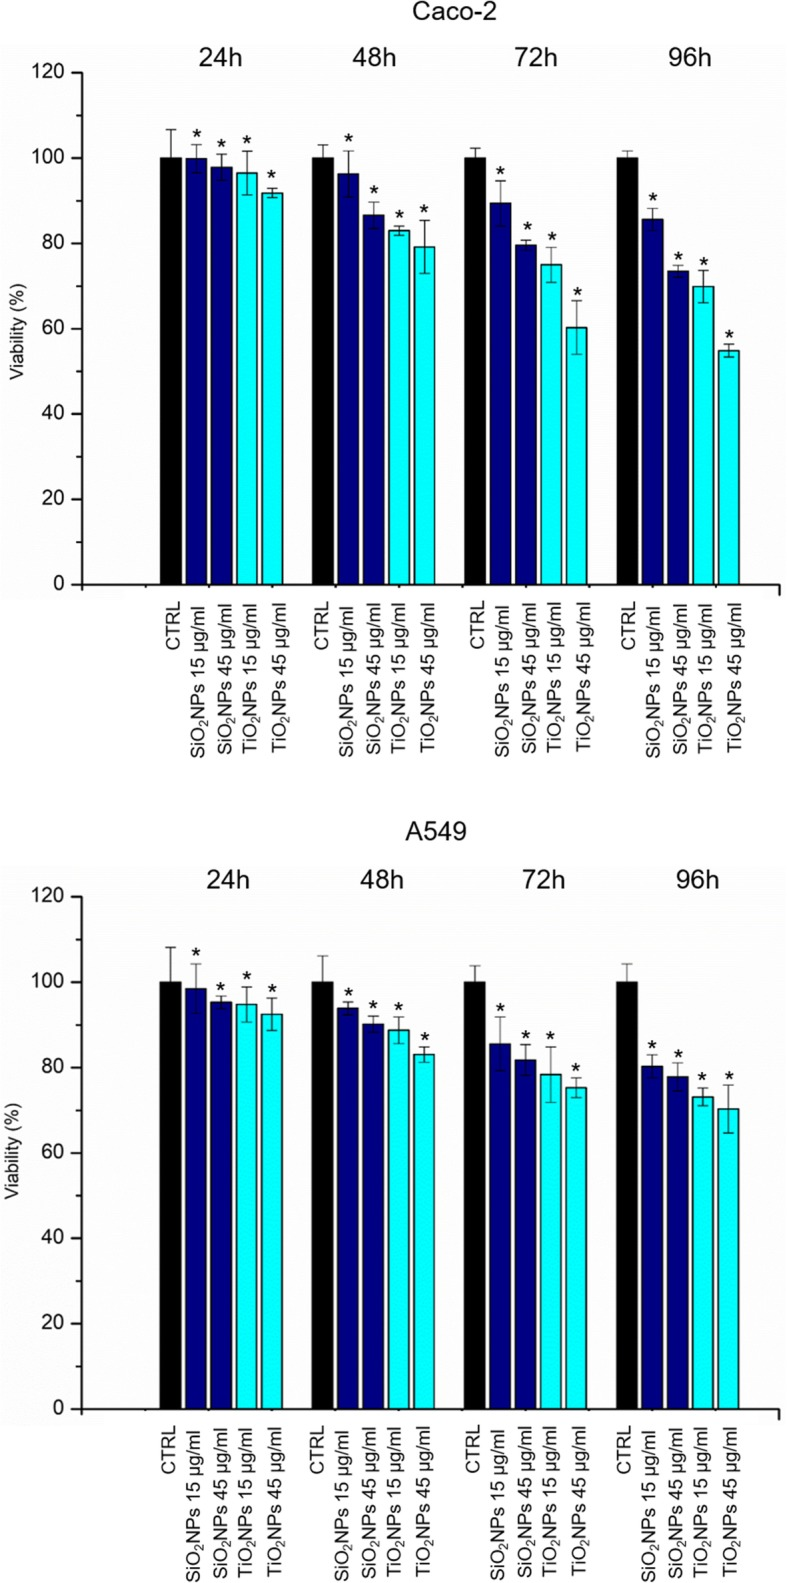 Viability assay (WST-8) of Caco-2 ( a ) and A549 ( b ) cells after 24 h, 48 h, 72 h, and 96 h of exposure to two doses (15 μg/ml and 45 μg/ml) of TiO 2 NPs and SiO 2 NPs. Viability of NP-treated cells was normalized to non-treated control cells. As positive control (P), cells were incubated with 5% DMSO (data not shown). Data reported as mean ± SD from three independent experiments are considered statistically significant compared with control ( n = 8) for p value